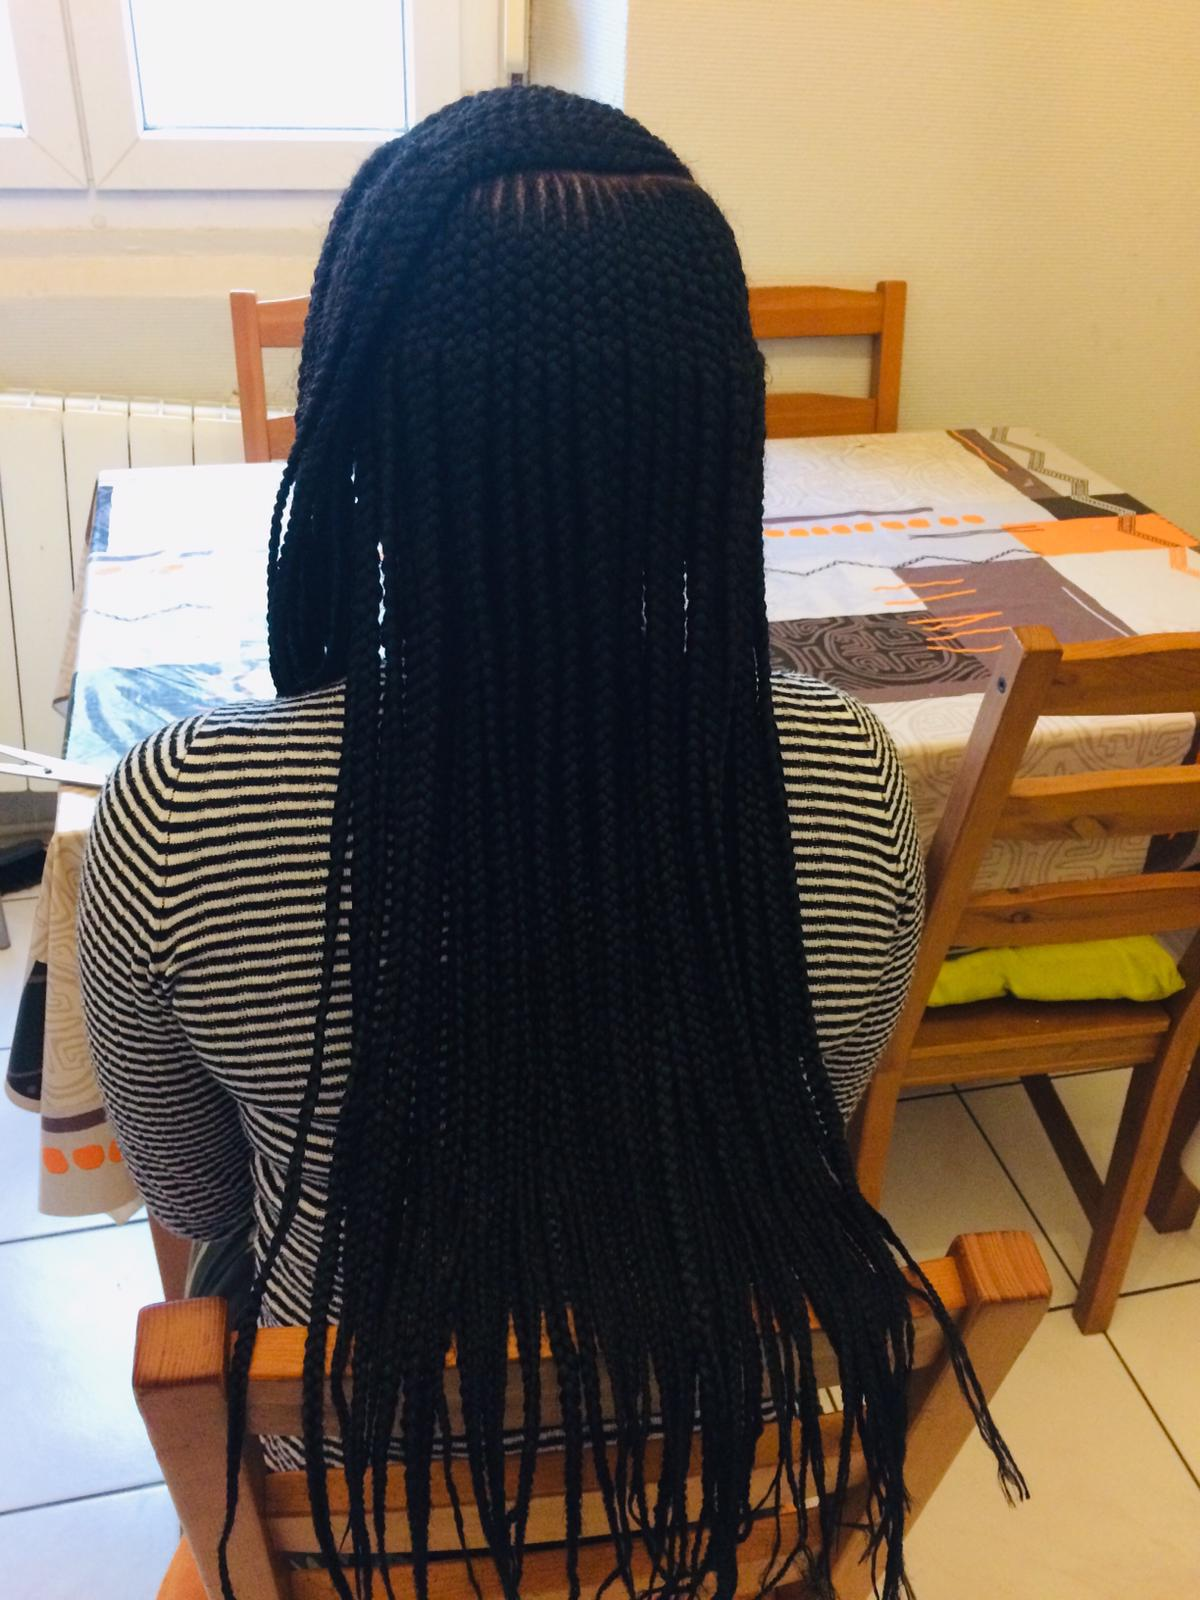 salon de coiffure afro tresse tresses box braids crochet braids vanilles tissages paris 75 77 78 91 92 93 94 95 URPYKCDY